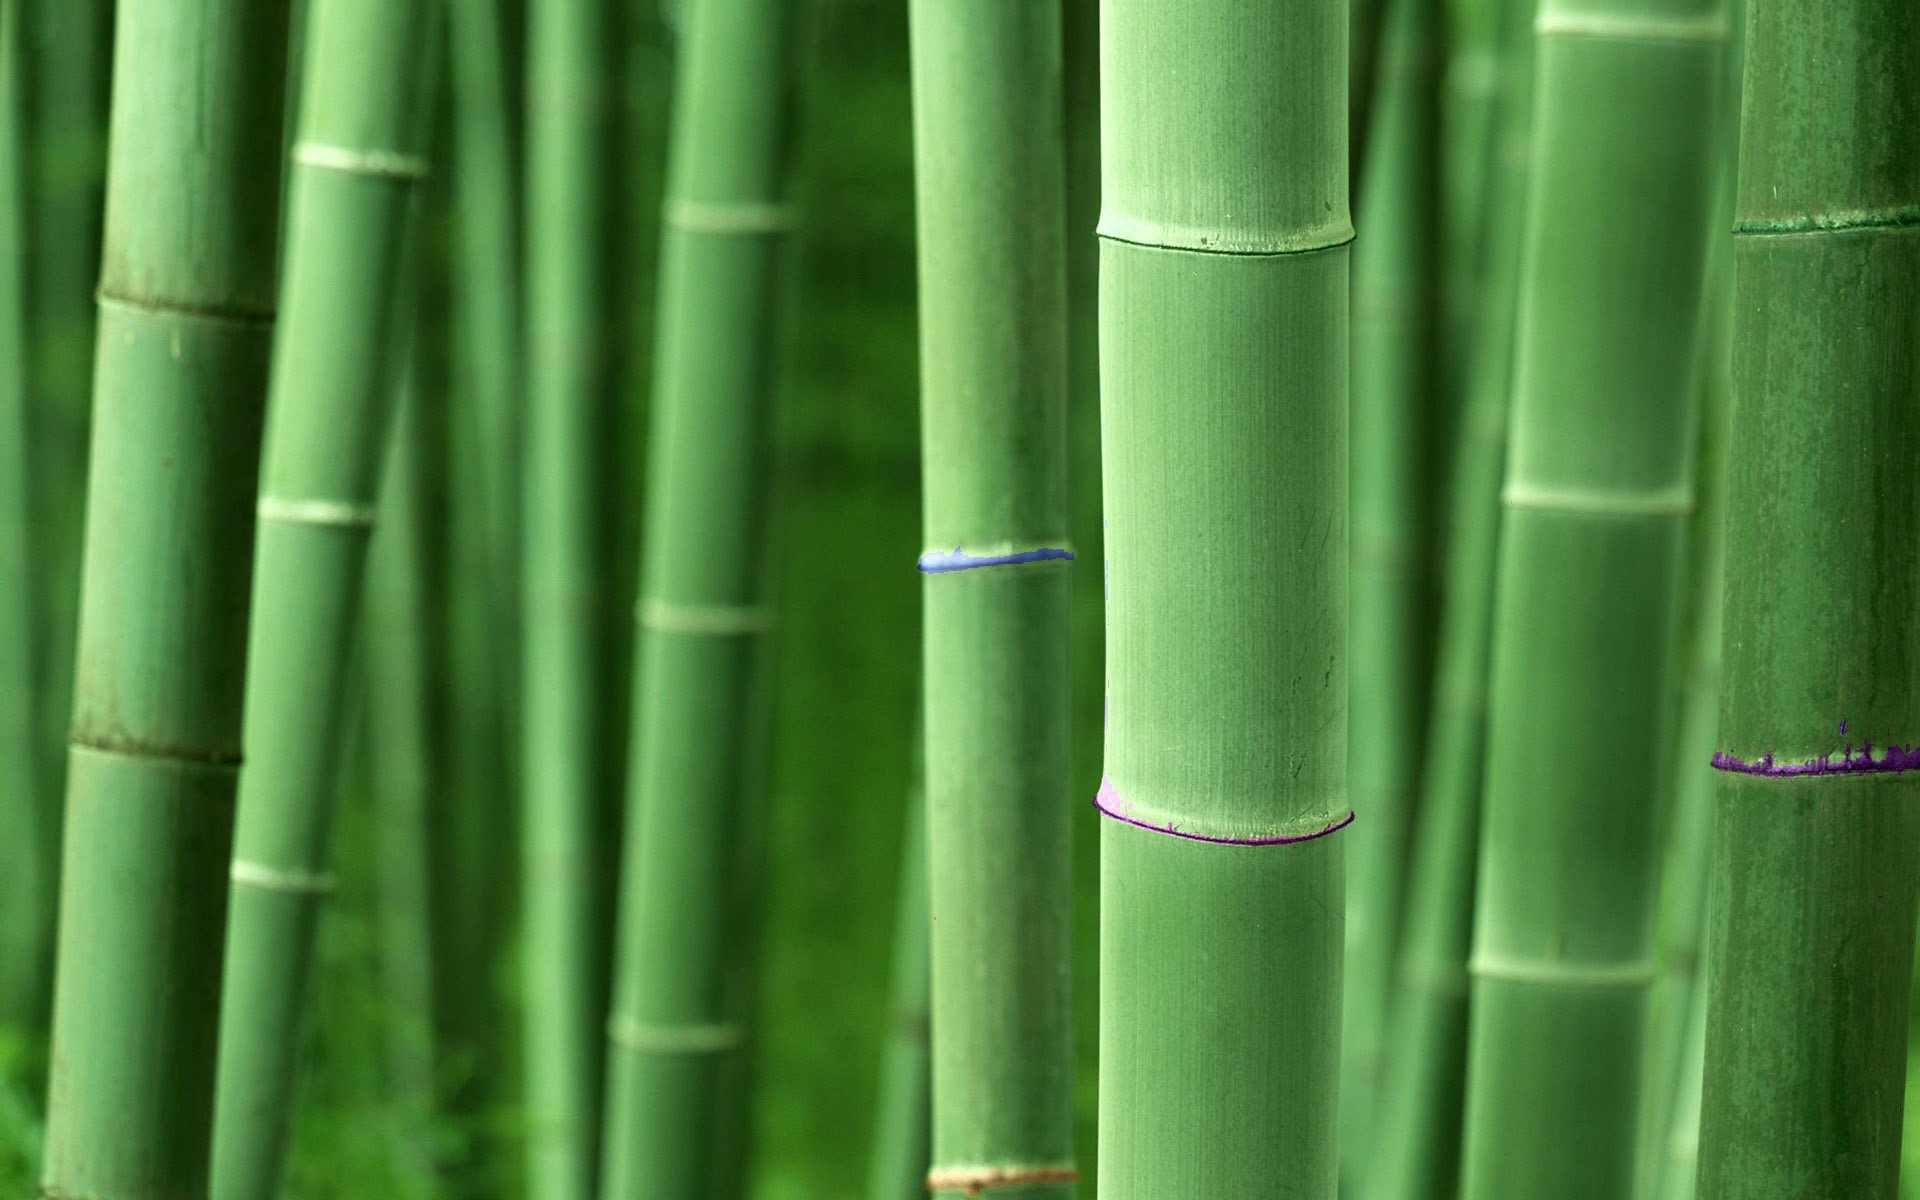 bamboo wallpapers hd for desktop backgrounds